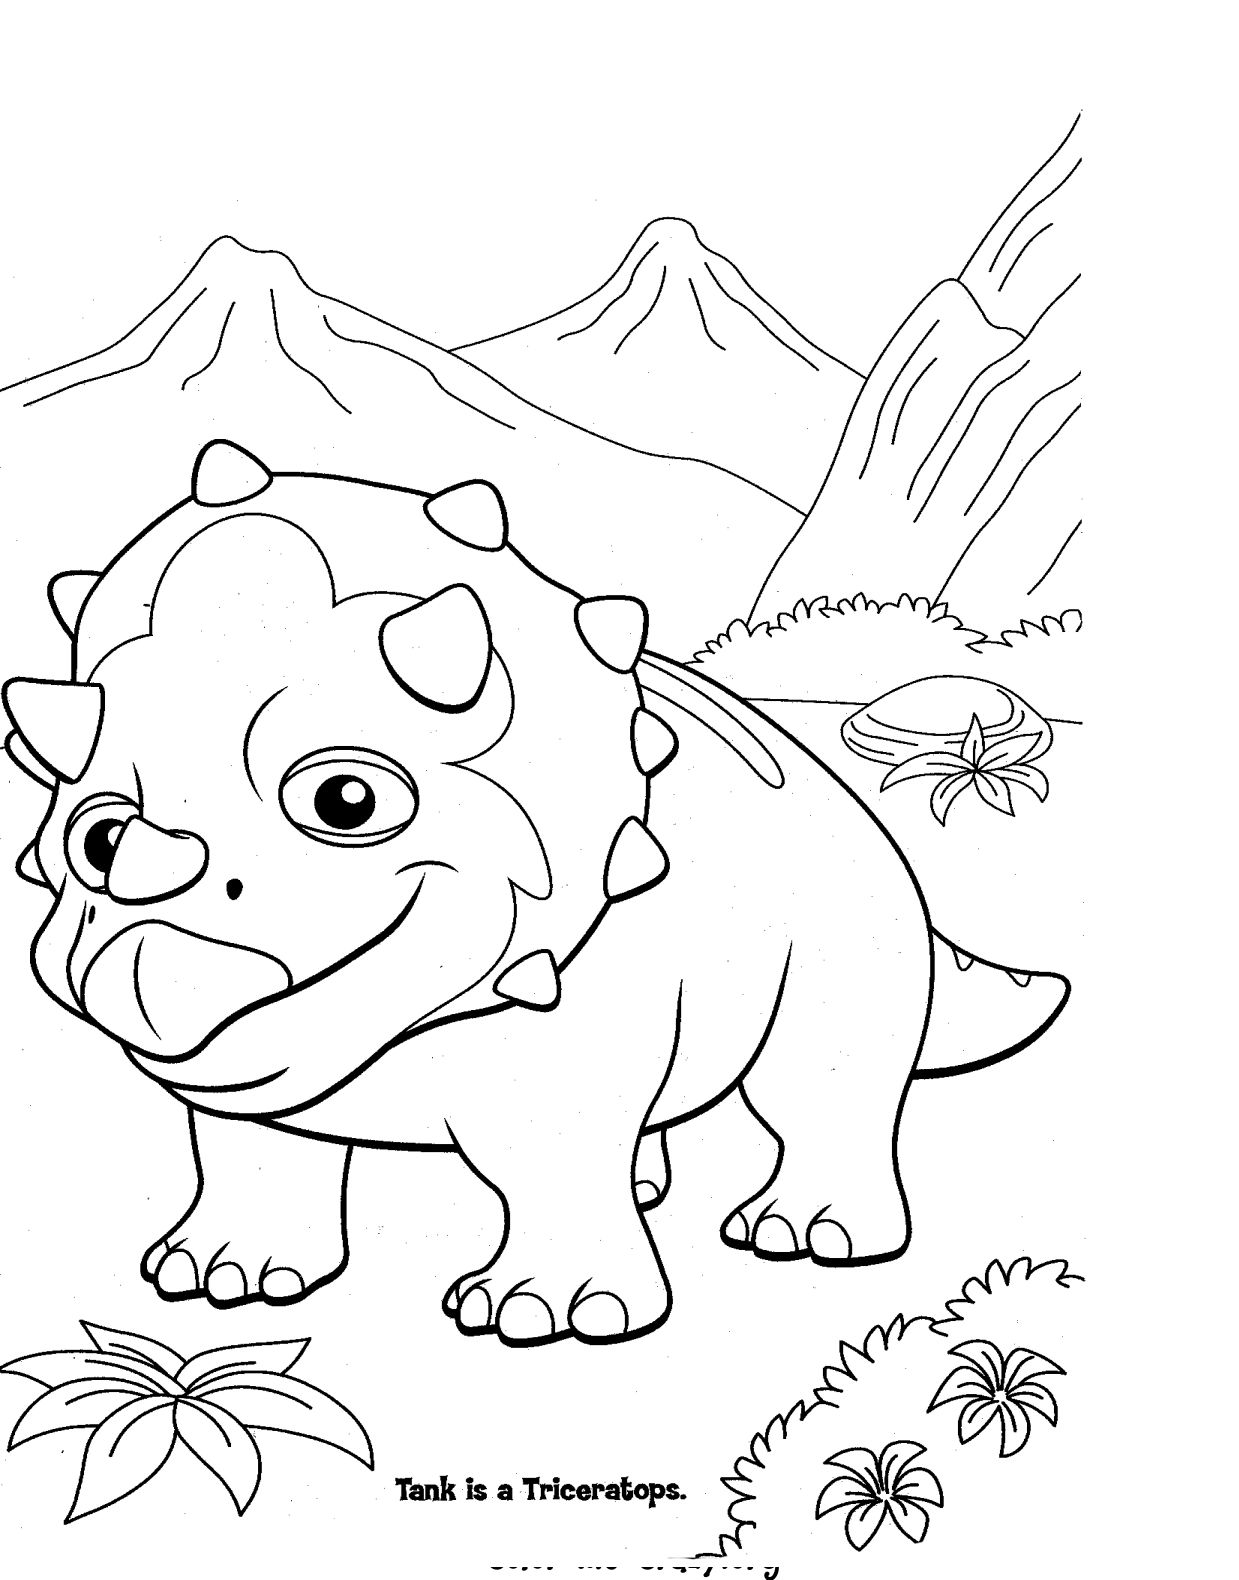 Decisive image in free printable dinosaur coloring pages